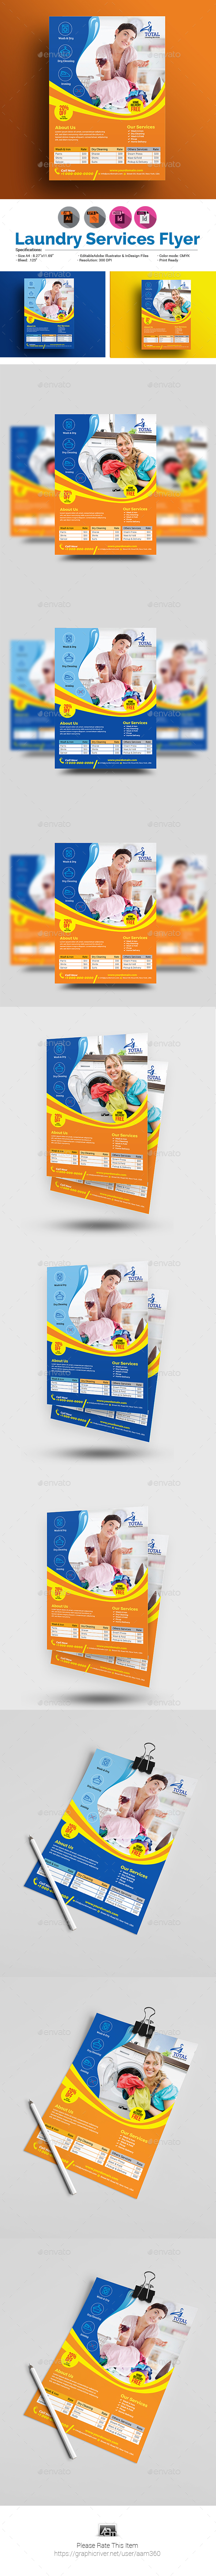 Laundry Services Flyer Template - Commerce Flyers